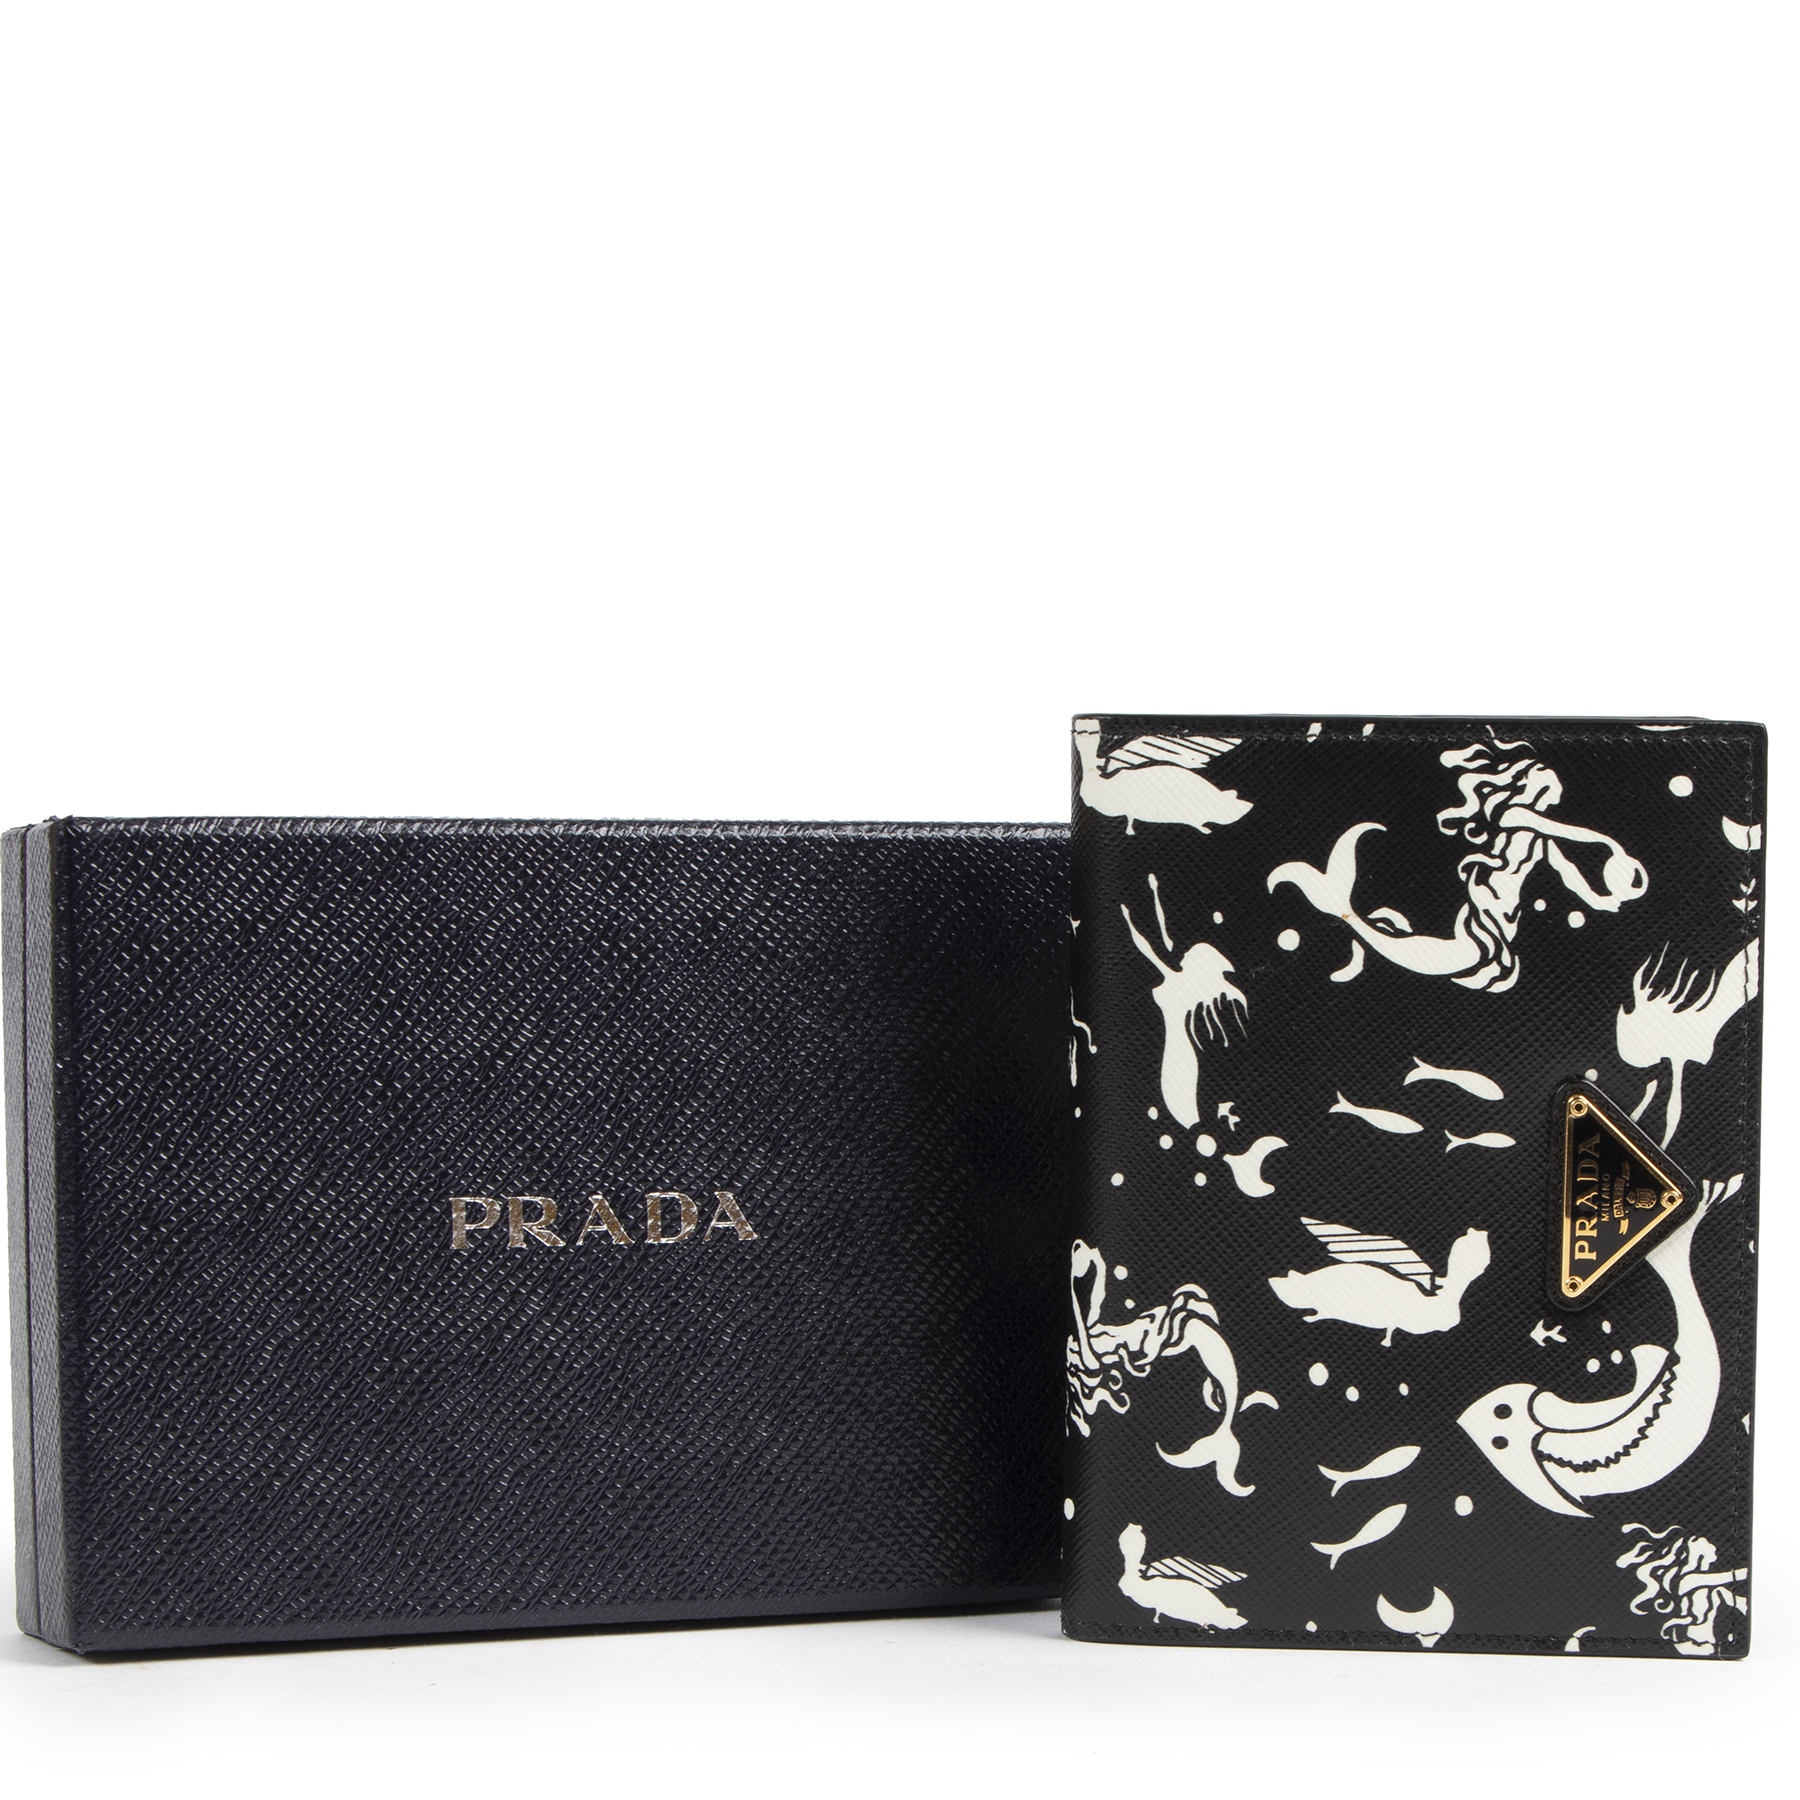 Authentic secondhand Prada Black Mermaid Print Wallet designer fashion luxury vintage webshop safe secure online shopping